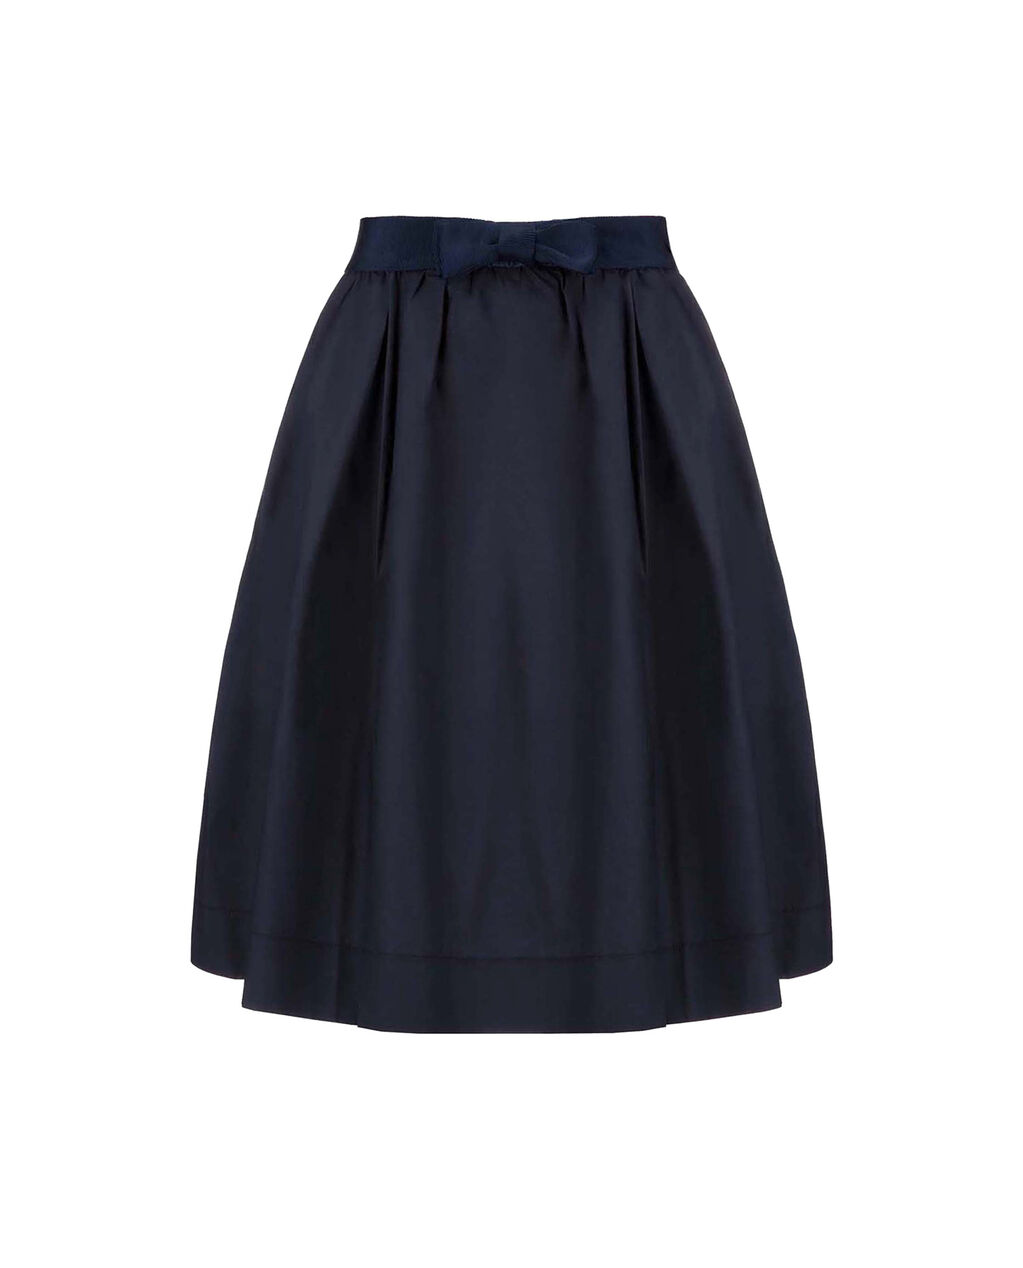 W'S Popeline Skirt, NIGHT SKY, hi-res